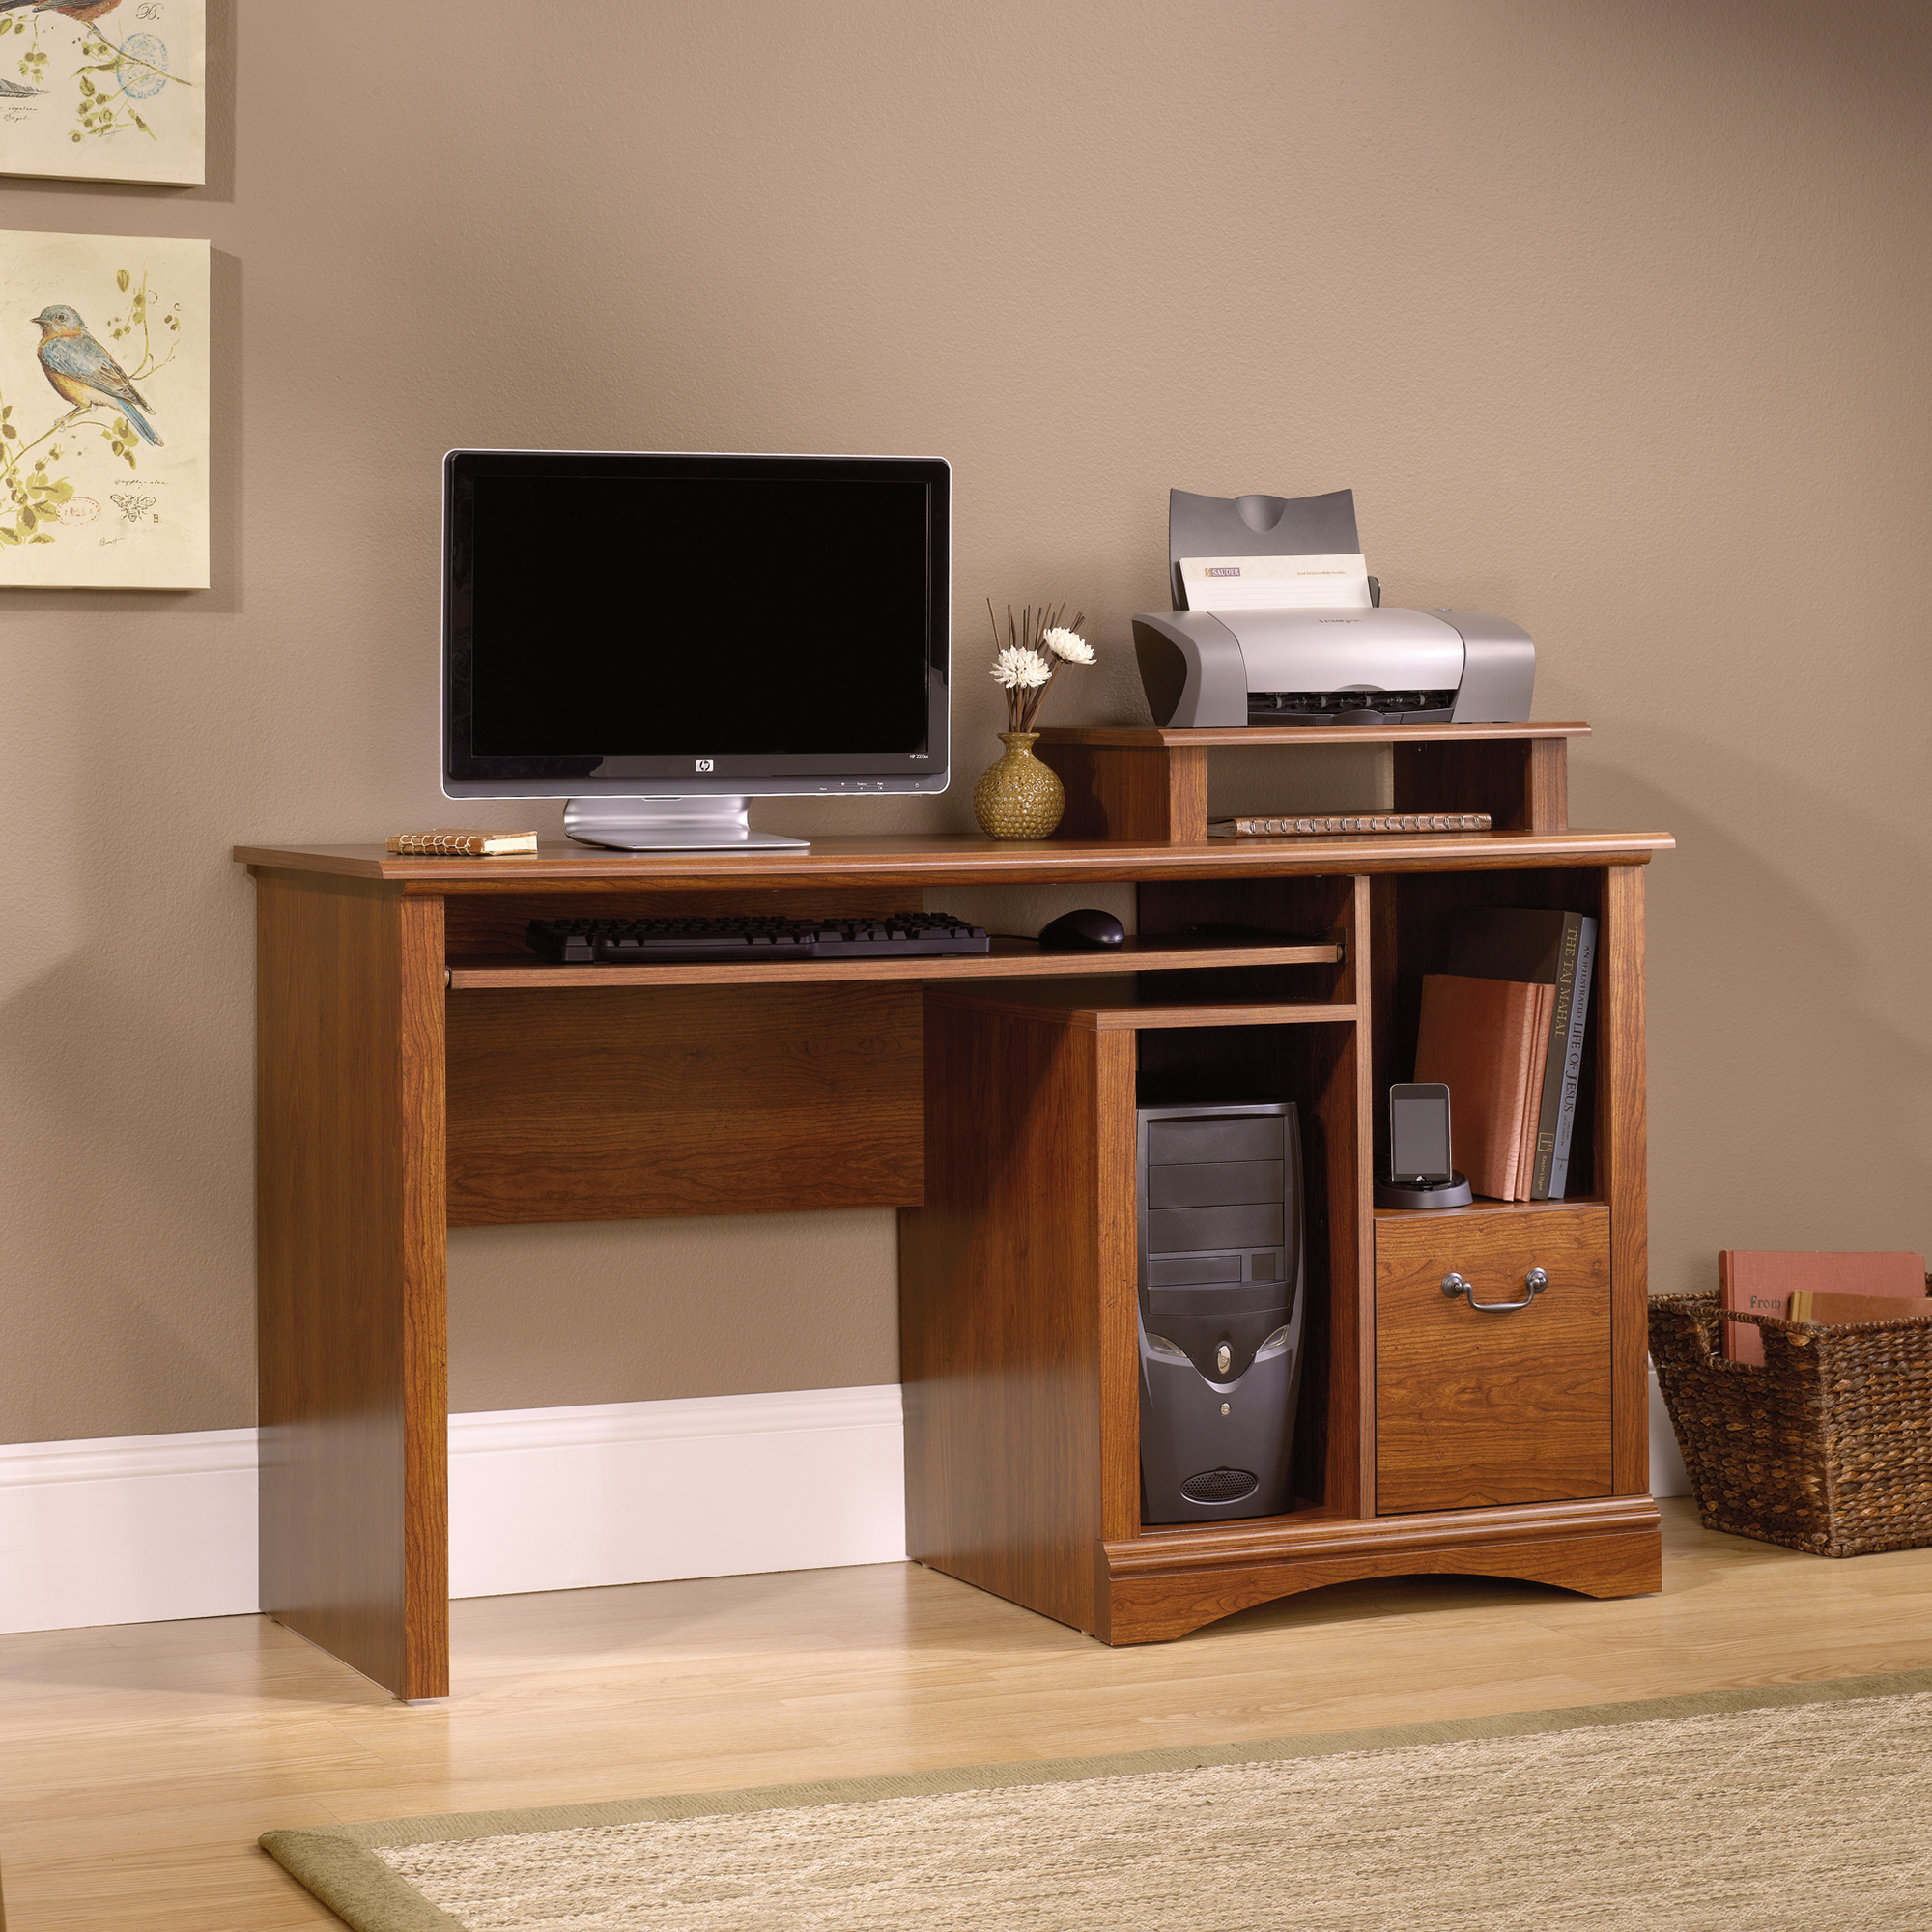 Sauder 101730 Camden County Desk Sauder The Furniture Co